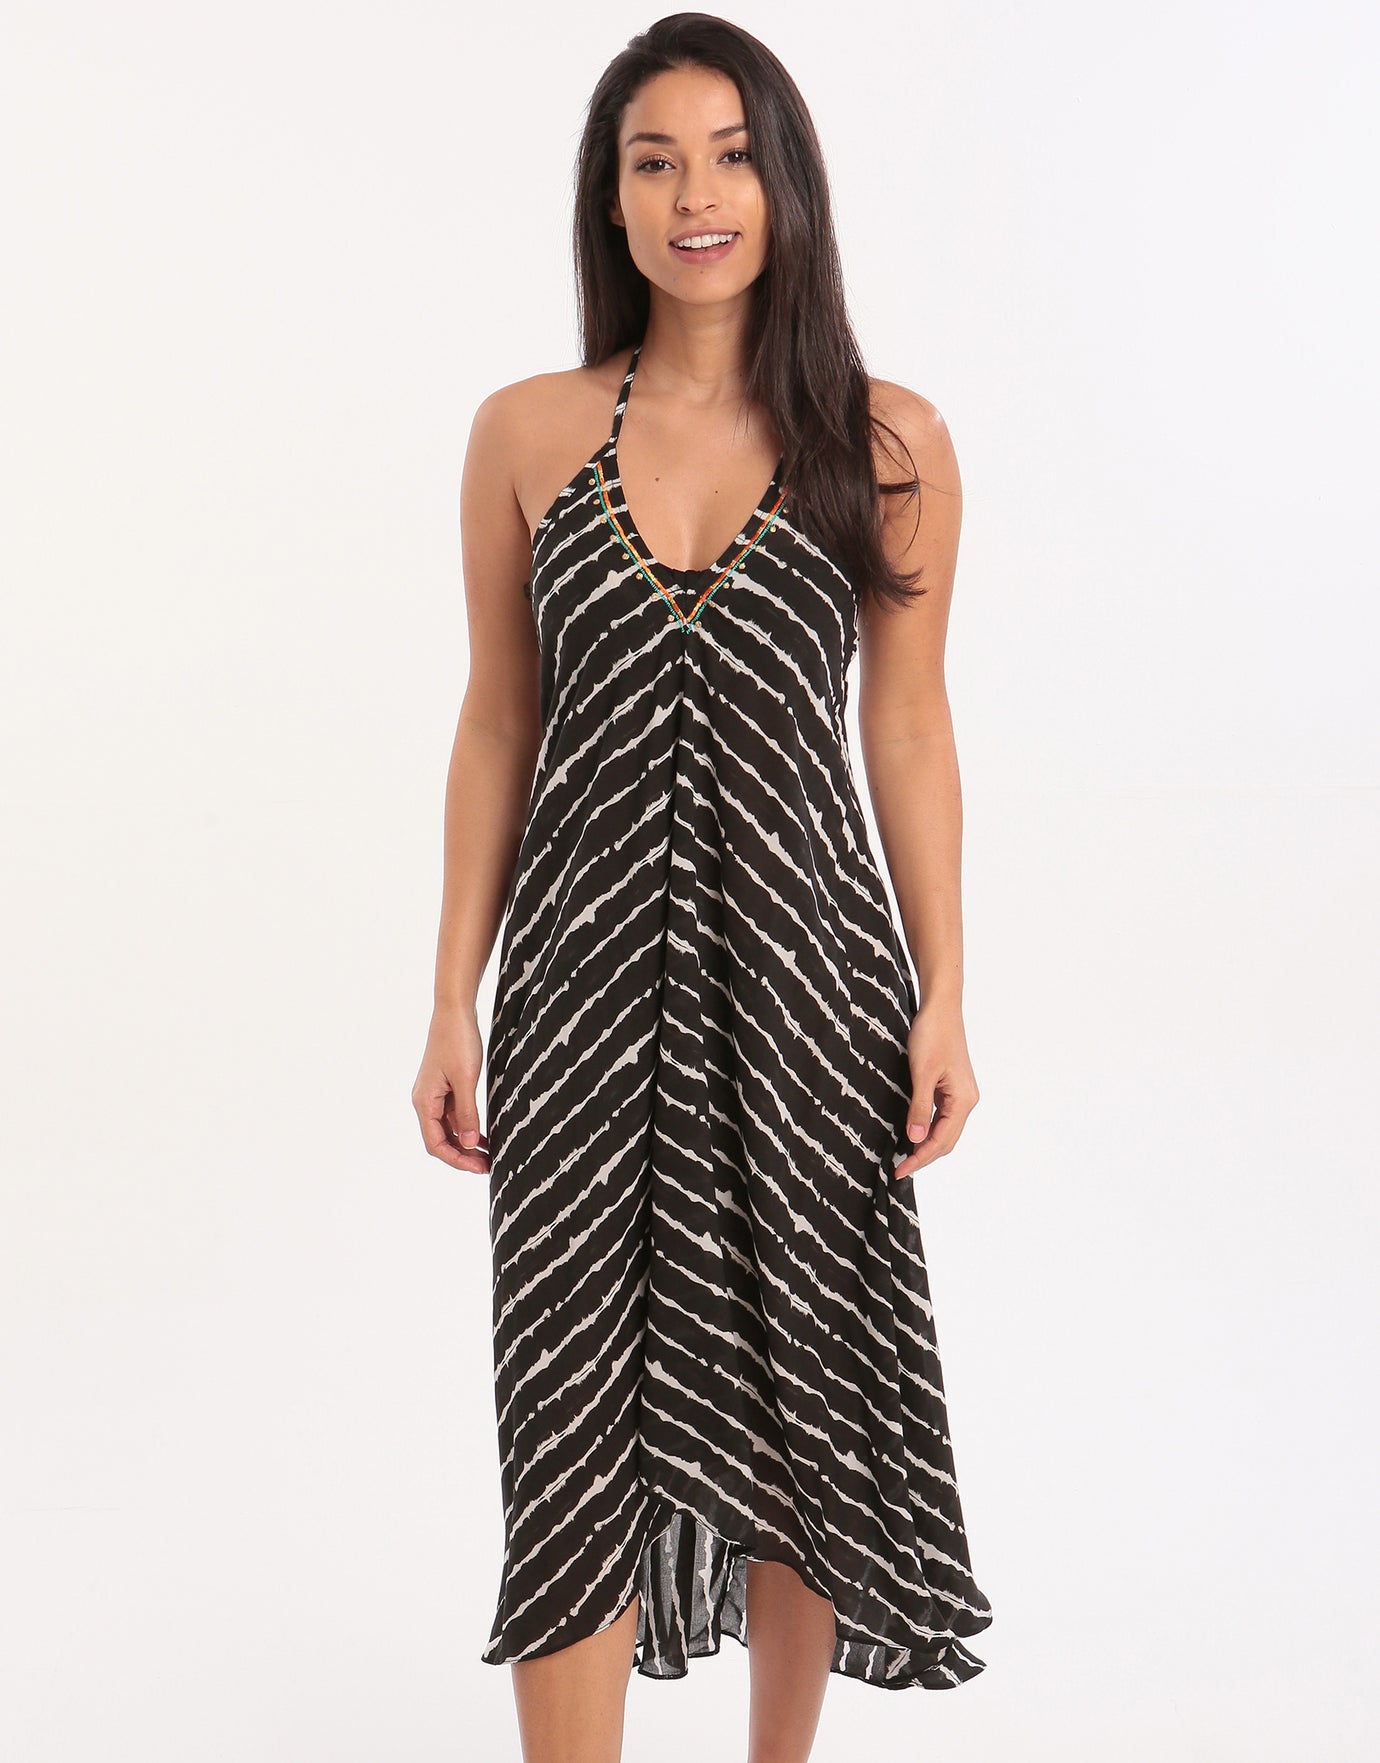 ac9bd52f40 Banana Moon Couture Watavoil Ohara Maxi Dress - Black | Simply Beach UK